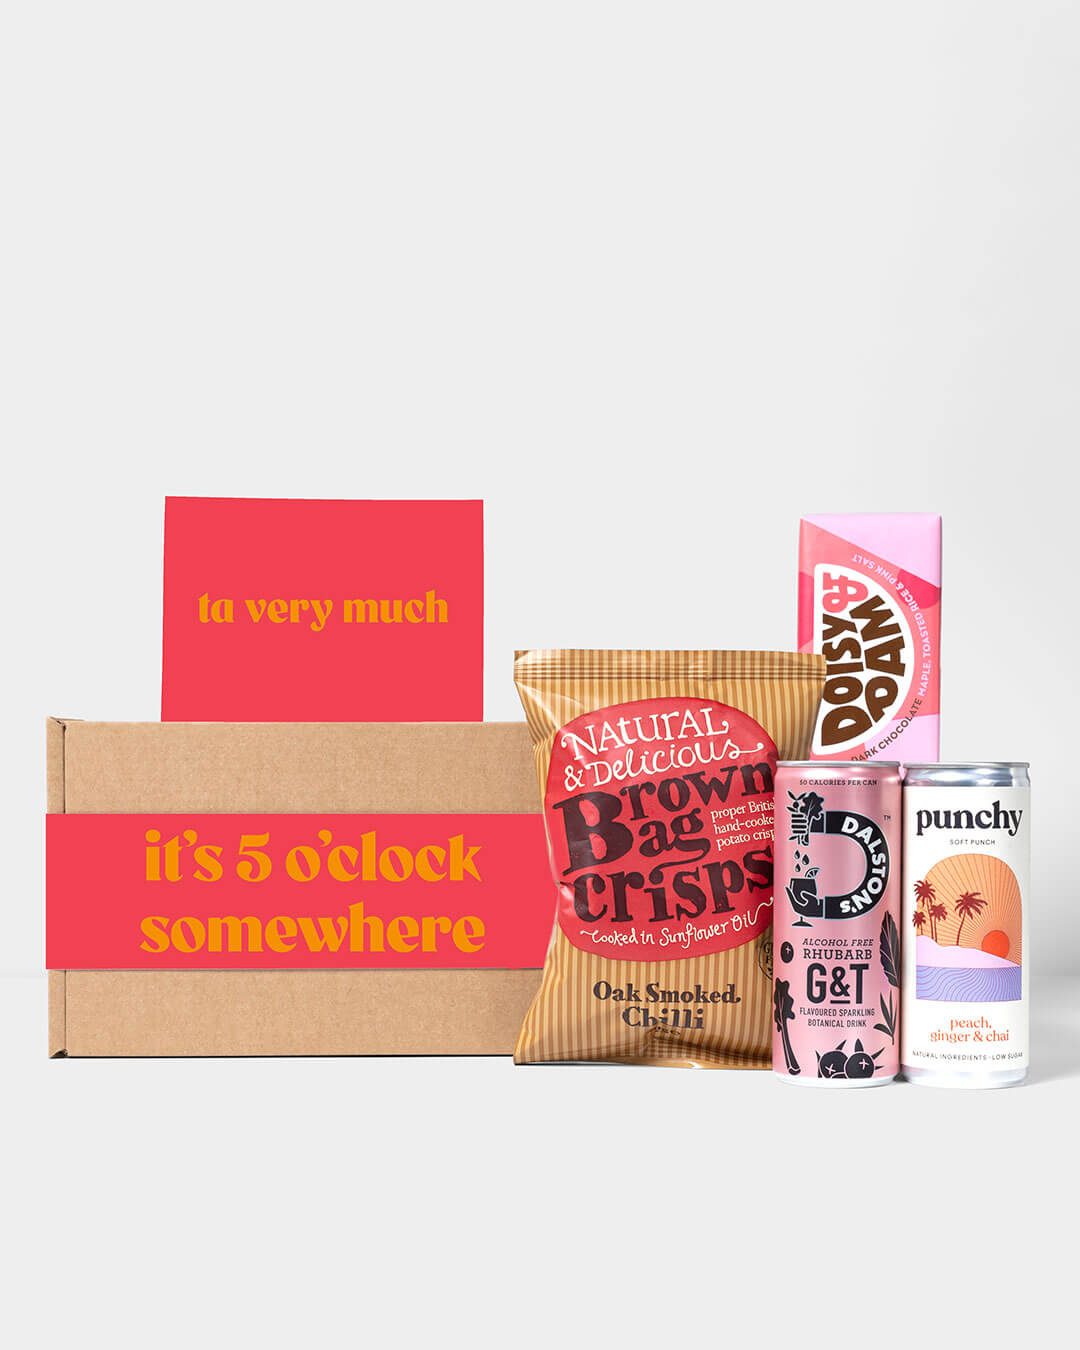 Alcohol Free Spirit box and contents including Dalston's AF Free G&T, Brown Bag Crisps & Doisy & Dam Chocolate